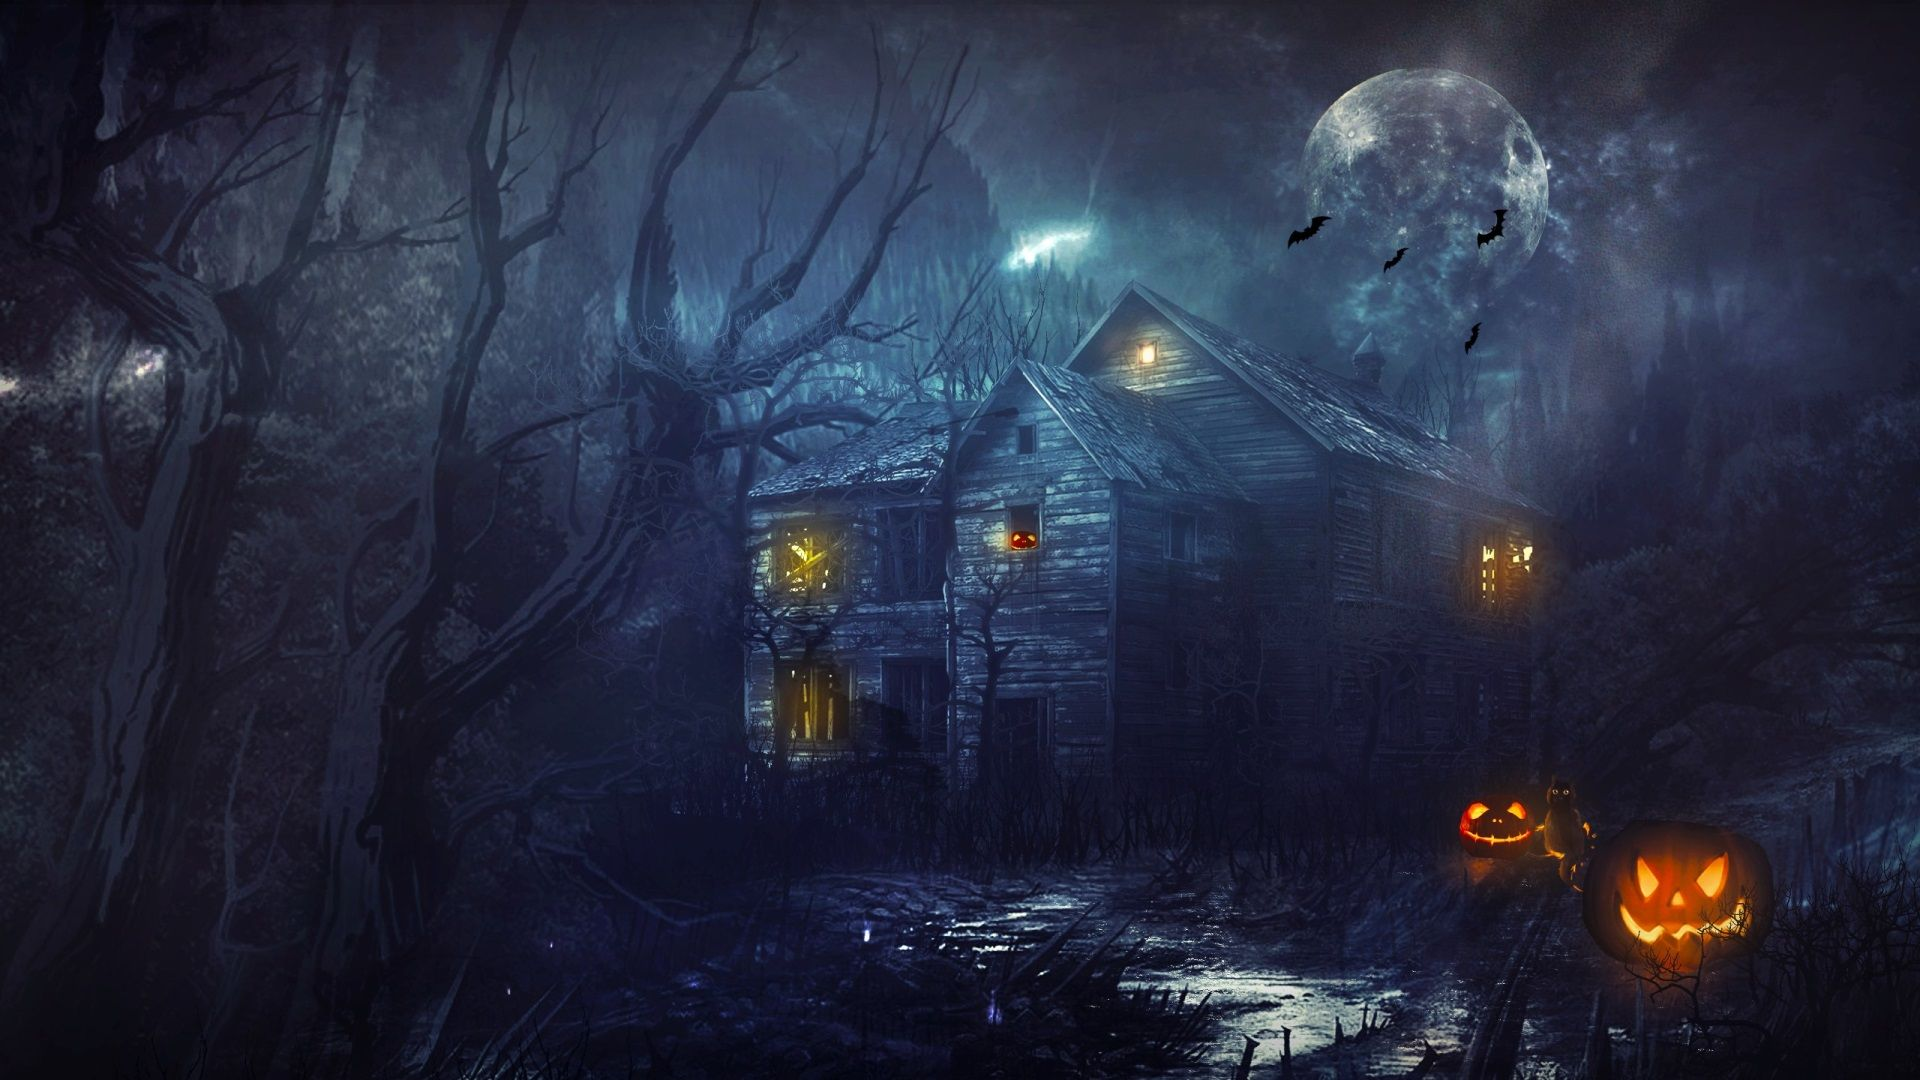 1920x1080 Halloween House Full Screen Wallpaper Hd Halloween Pictures Halloween Images Halloween Haunted Houses